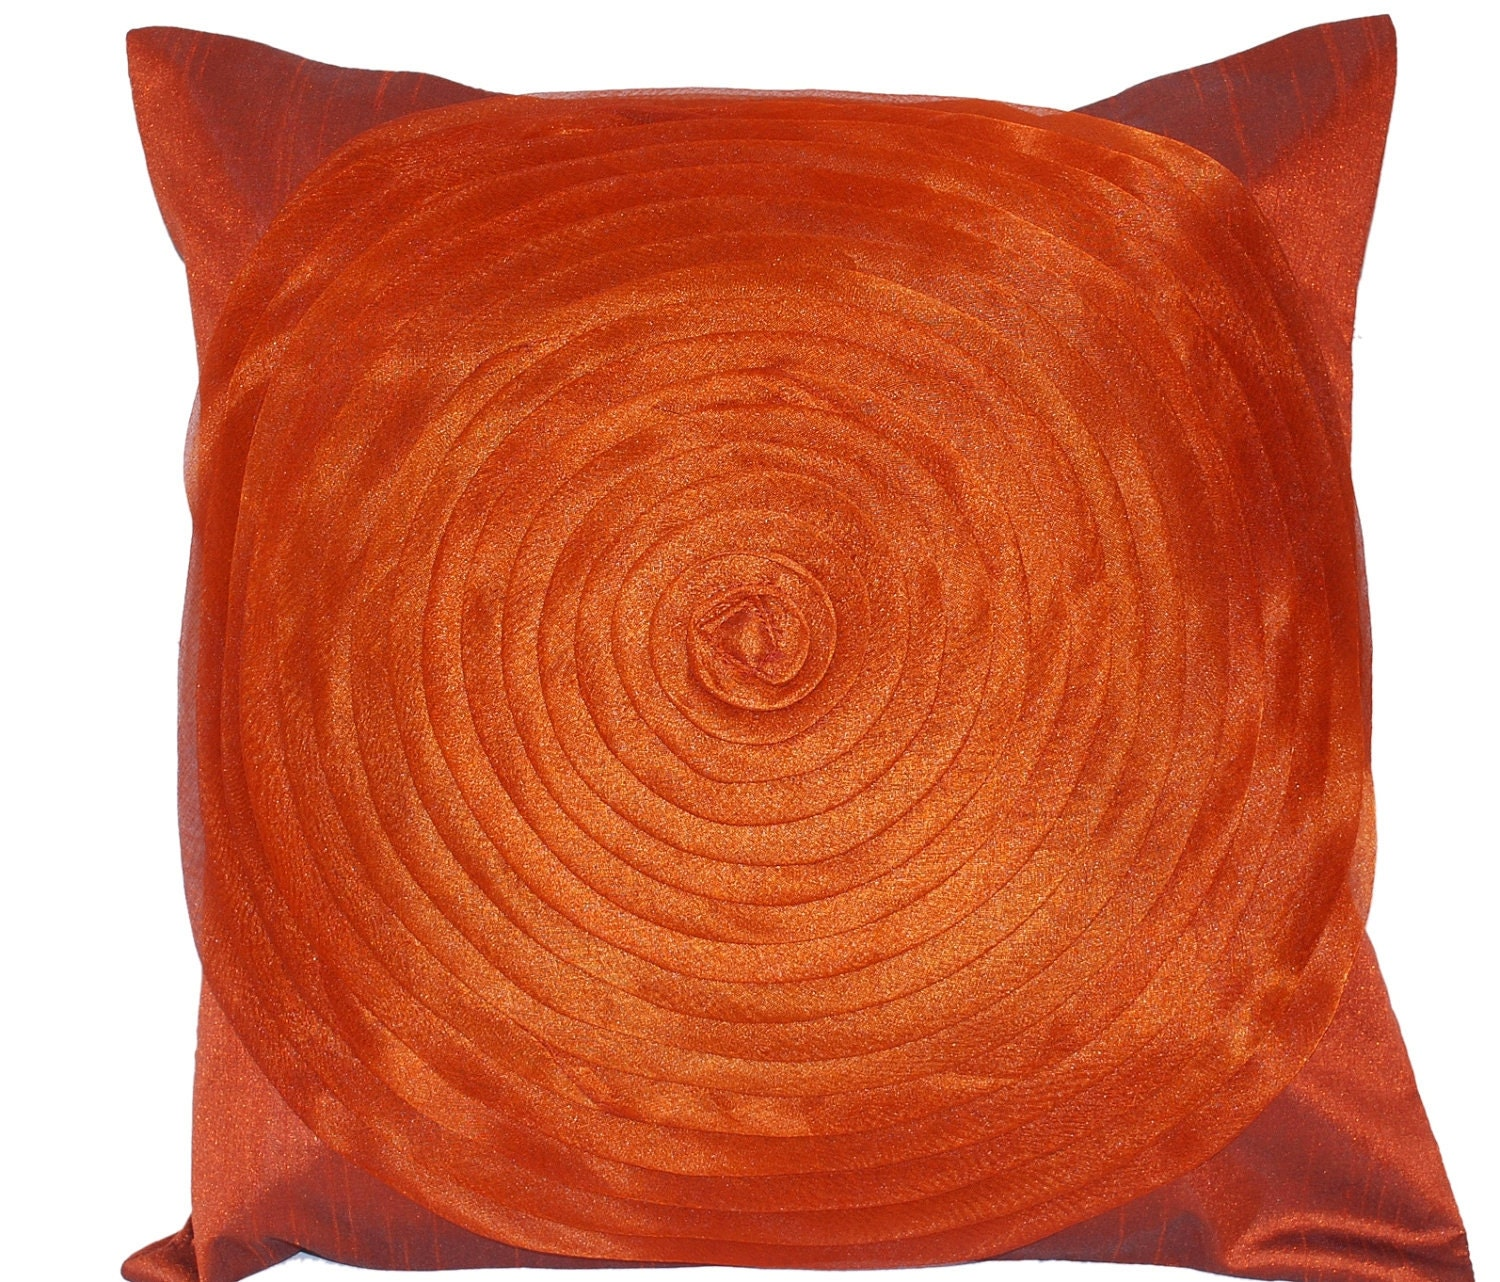 Rust Throw Pillow, Brown Throw Pillow, Ruffle Throw Pillow, Orange, Organza, Ruffles, Swirls, Copper, Autumn, Silk - 'Glam Rust Ruffles' - TheHomeCorner